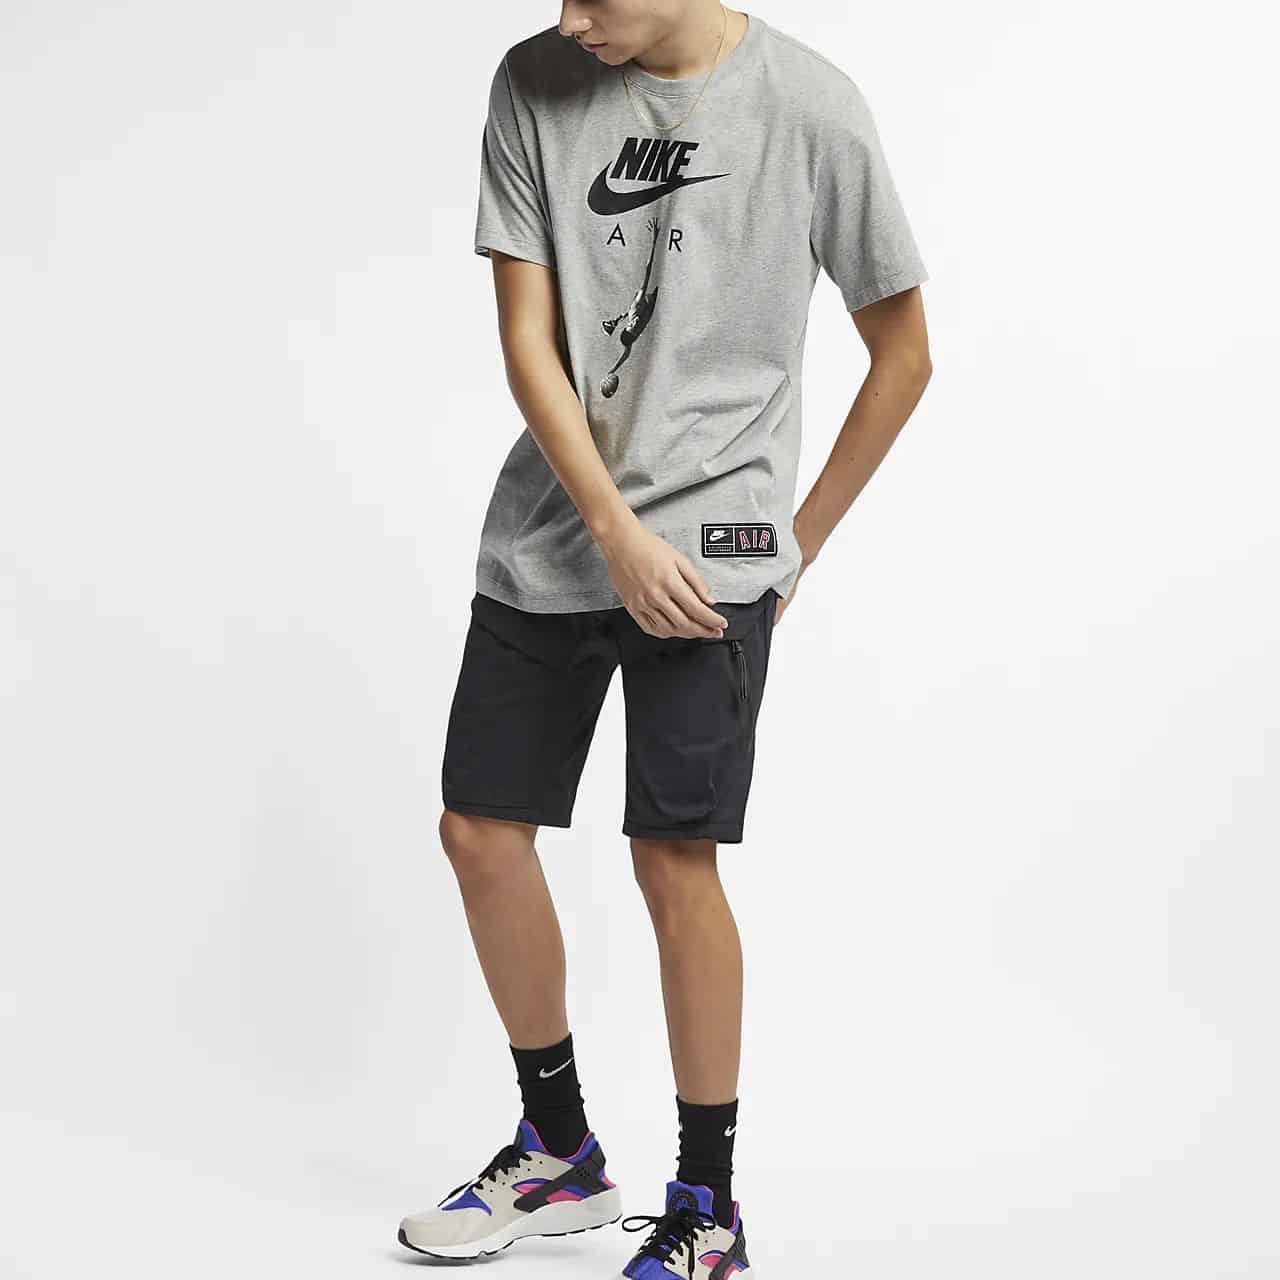 TRICOU ORIGINAL NIKE AIR MEN'S T-SHIRT - AR5046 063